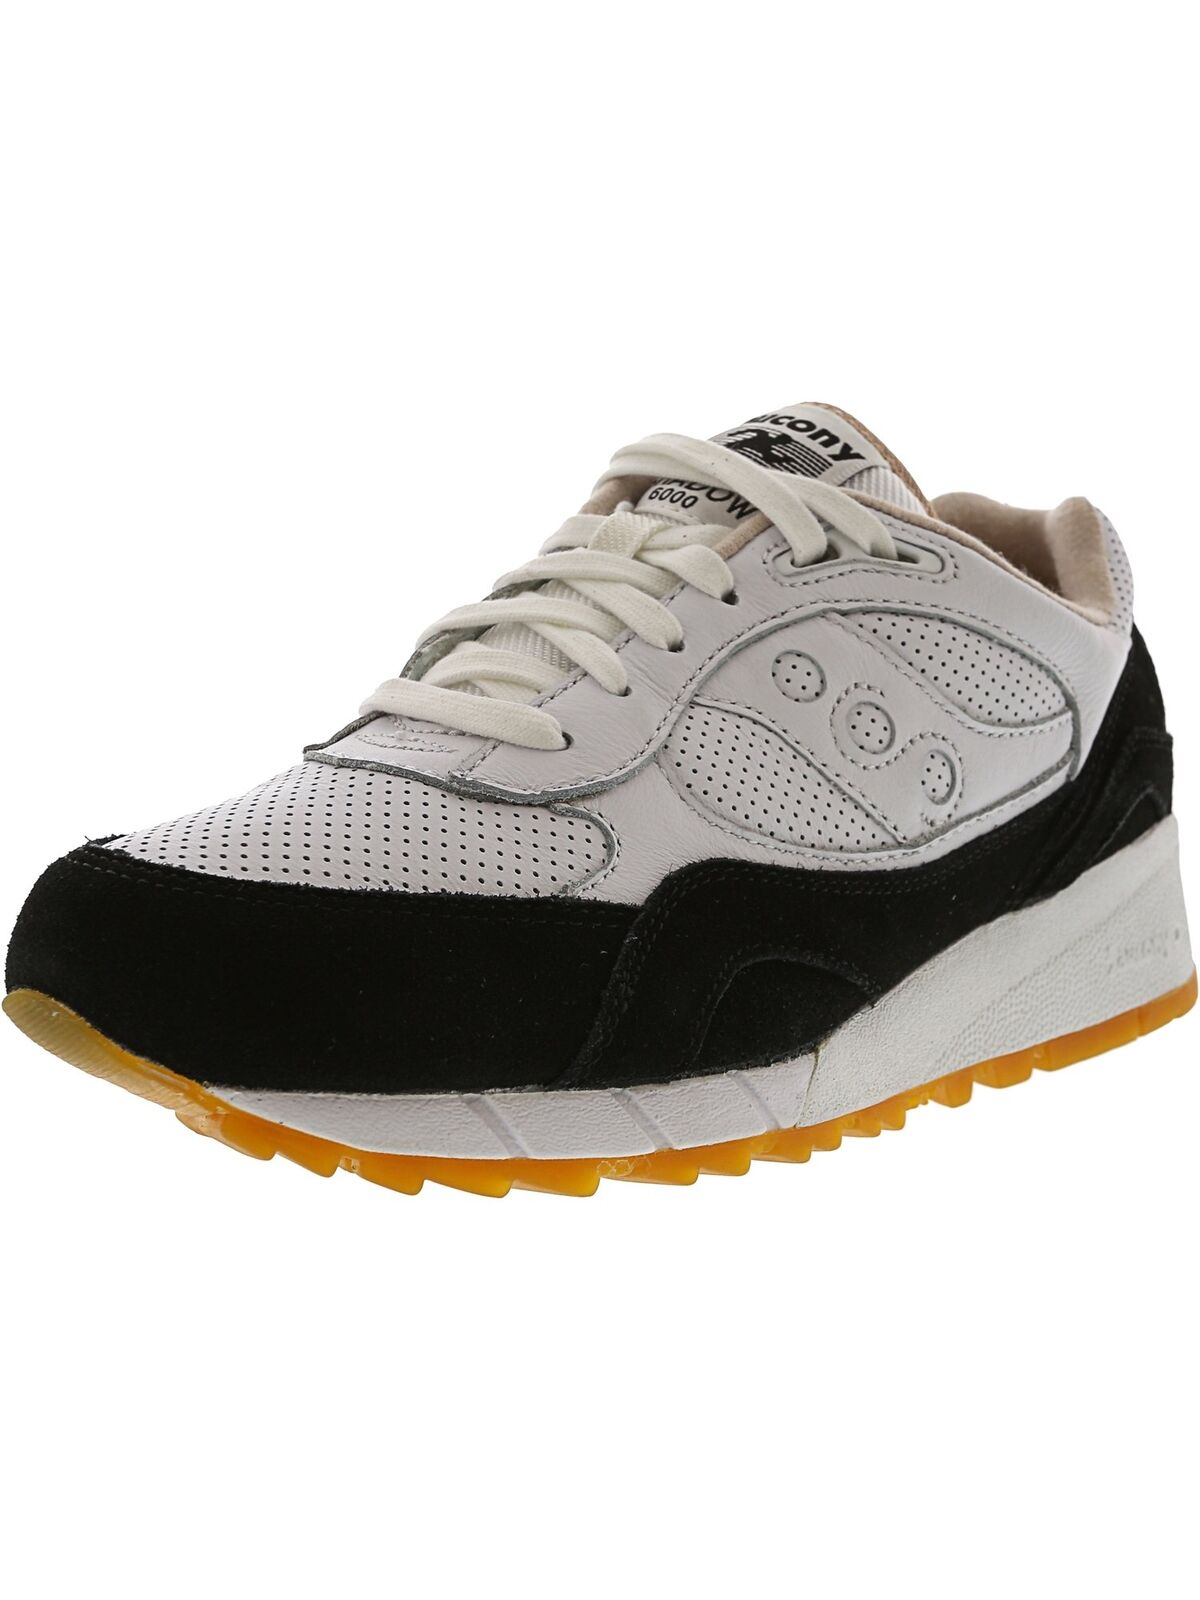 Saucony Men's Shadow 6000 Ht Ankle-High Leather Running shoes